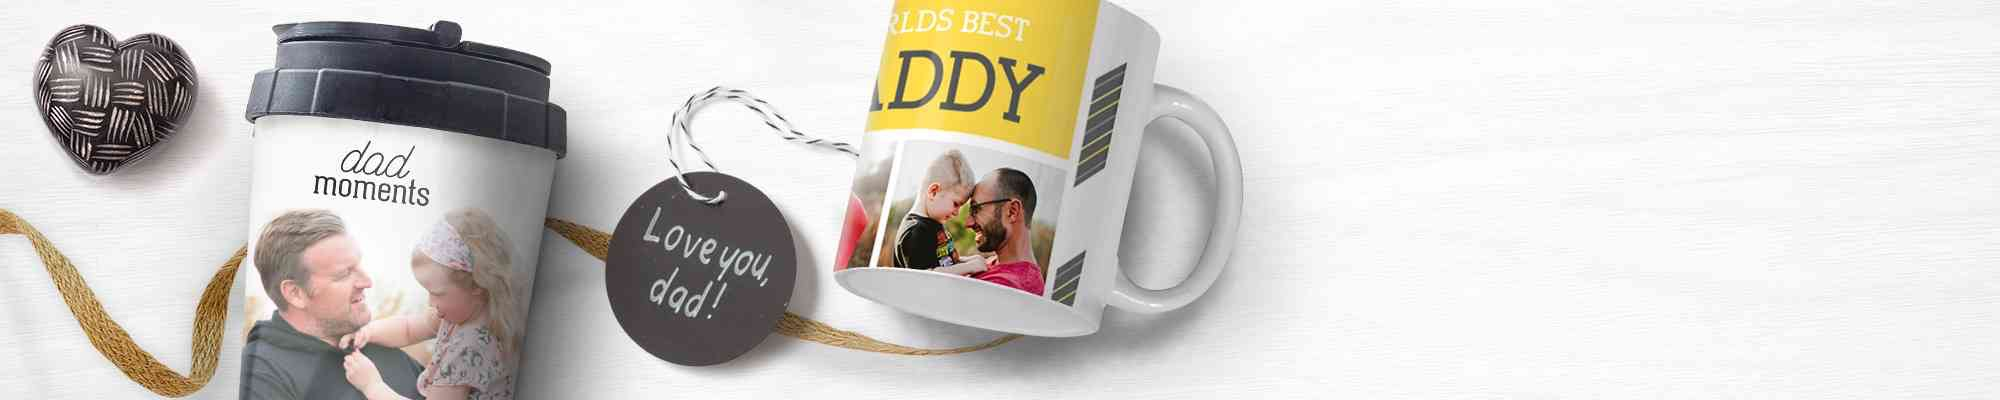 The Greenwich Mummy Blog - Fathers Day gift ideas for dads